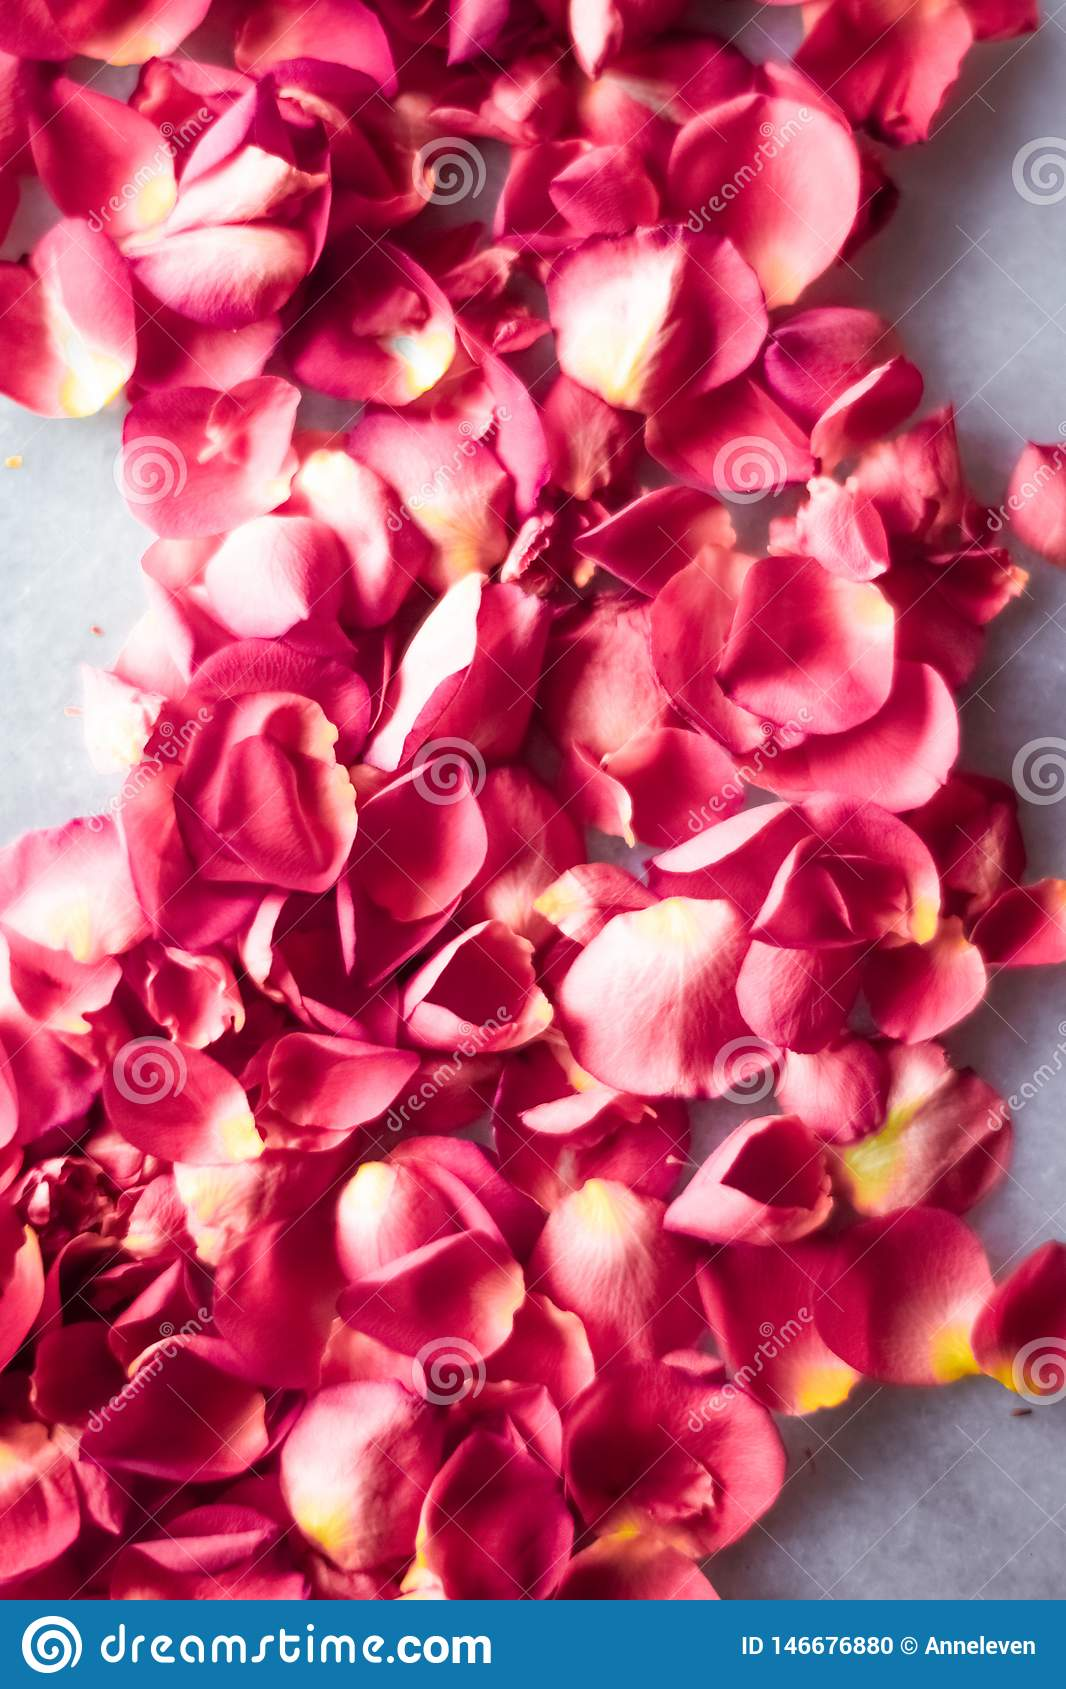 Rose petals on marble stone, floral background